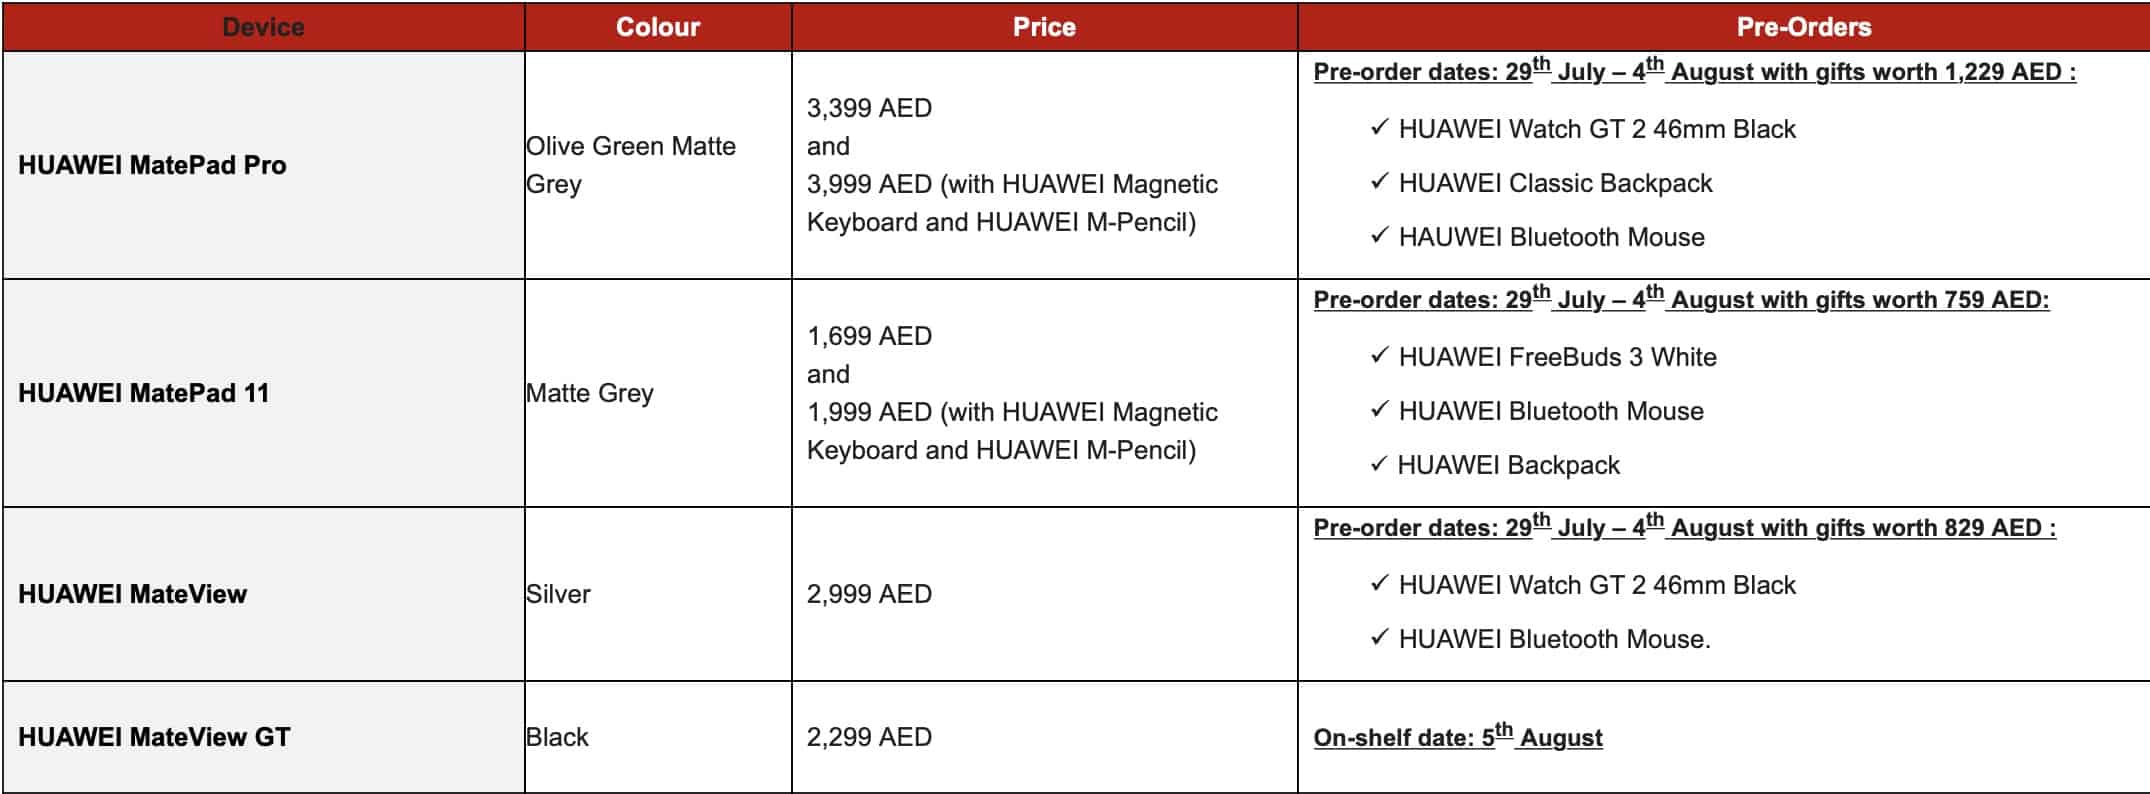 Huawei breaks through with the all-new Super Device experience announced in the UAE